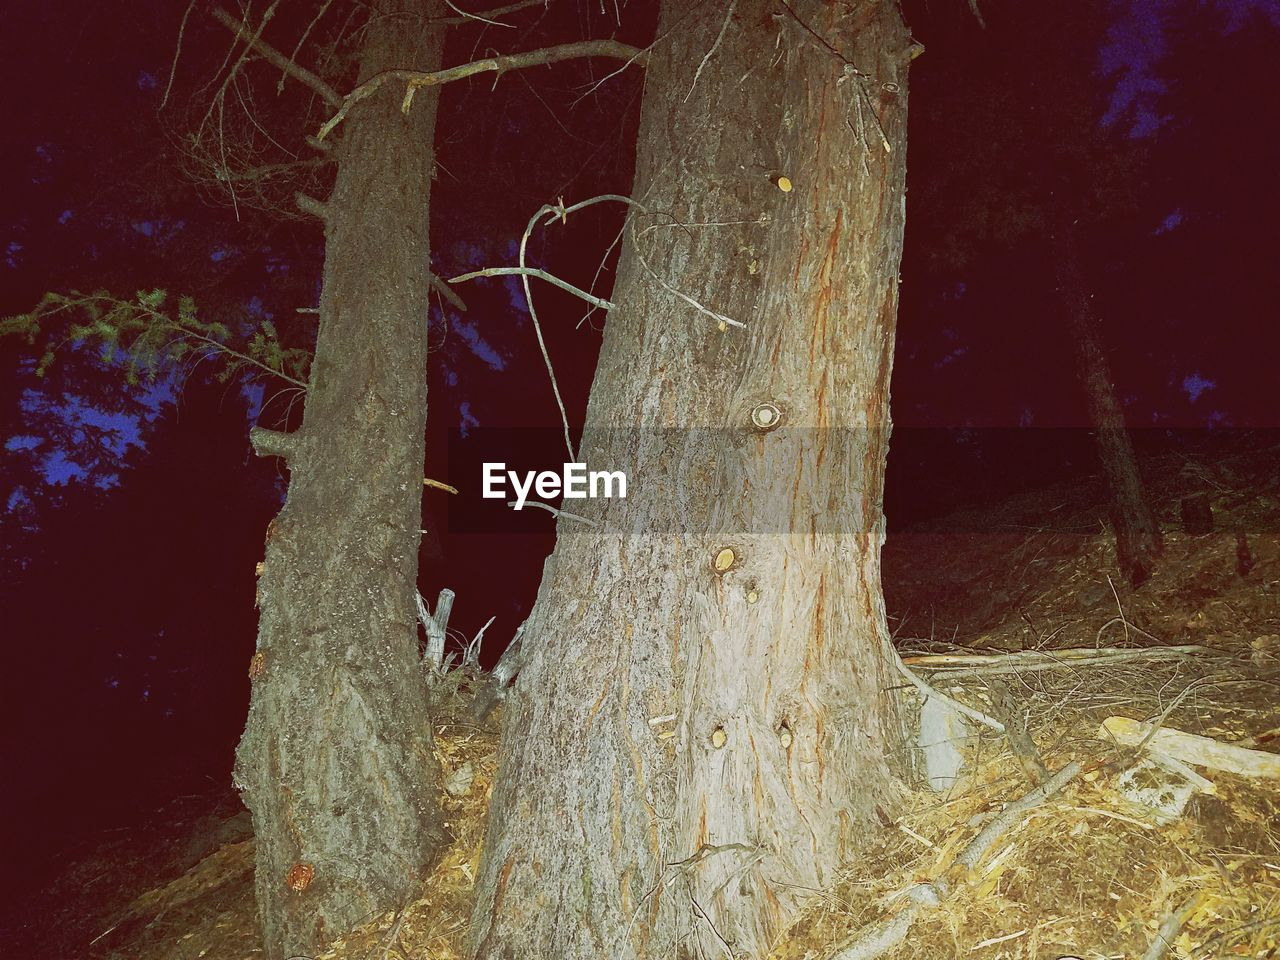 tree, plant, tree trunk, no people, trunk, night, nature, close-up, wood - material, growth, outdoors, forest, tranquility, beauty in nature, land, complexity, branch, plant part, wood, icicle